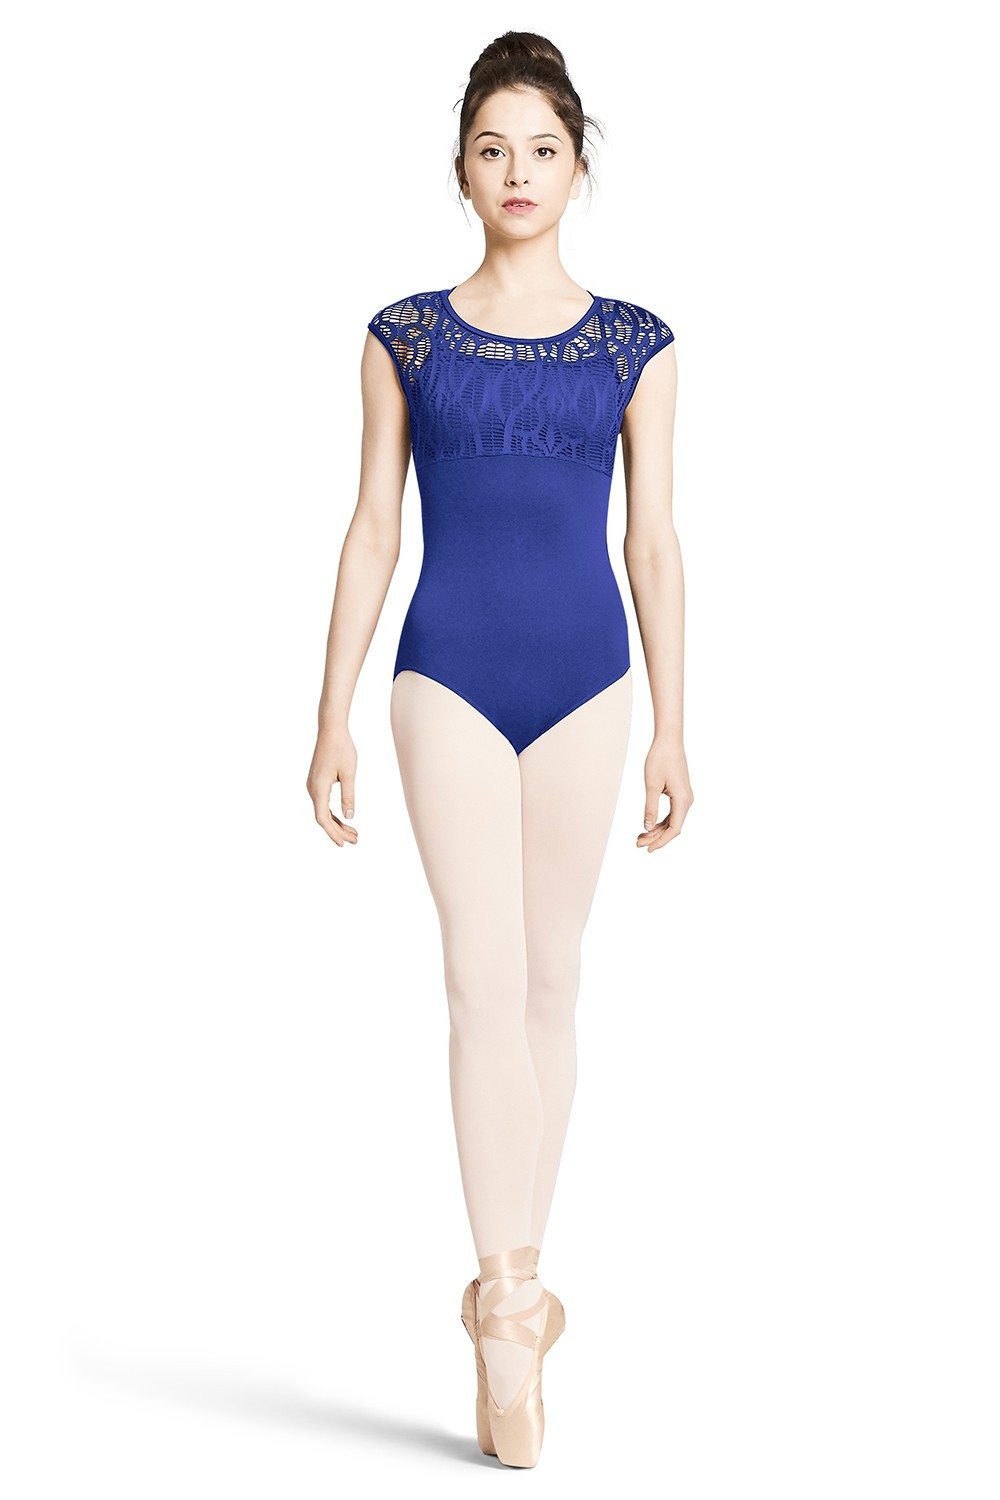 Body Con Maniche Ad Aletta E Spalline Incrociate Sul Retro Women's Dance Leotards